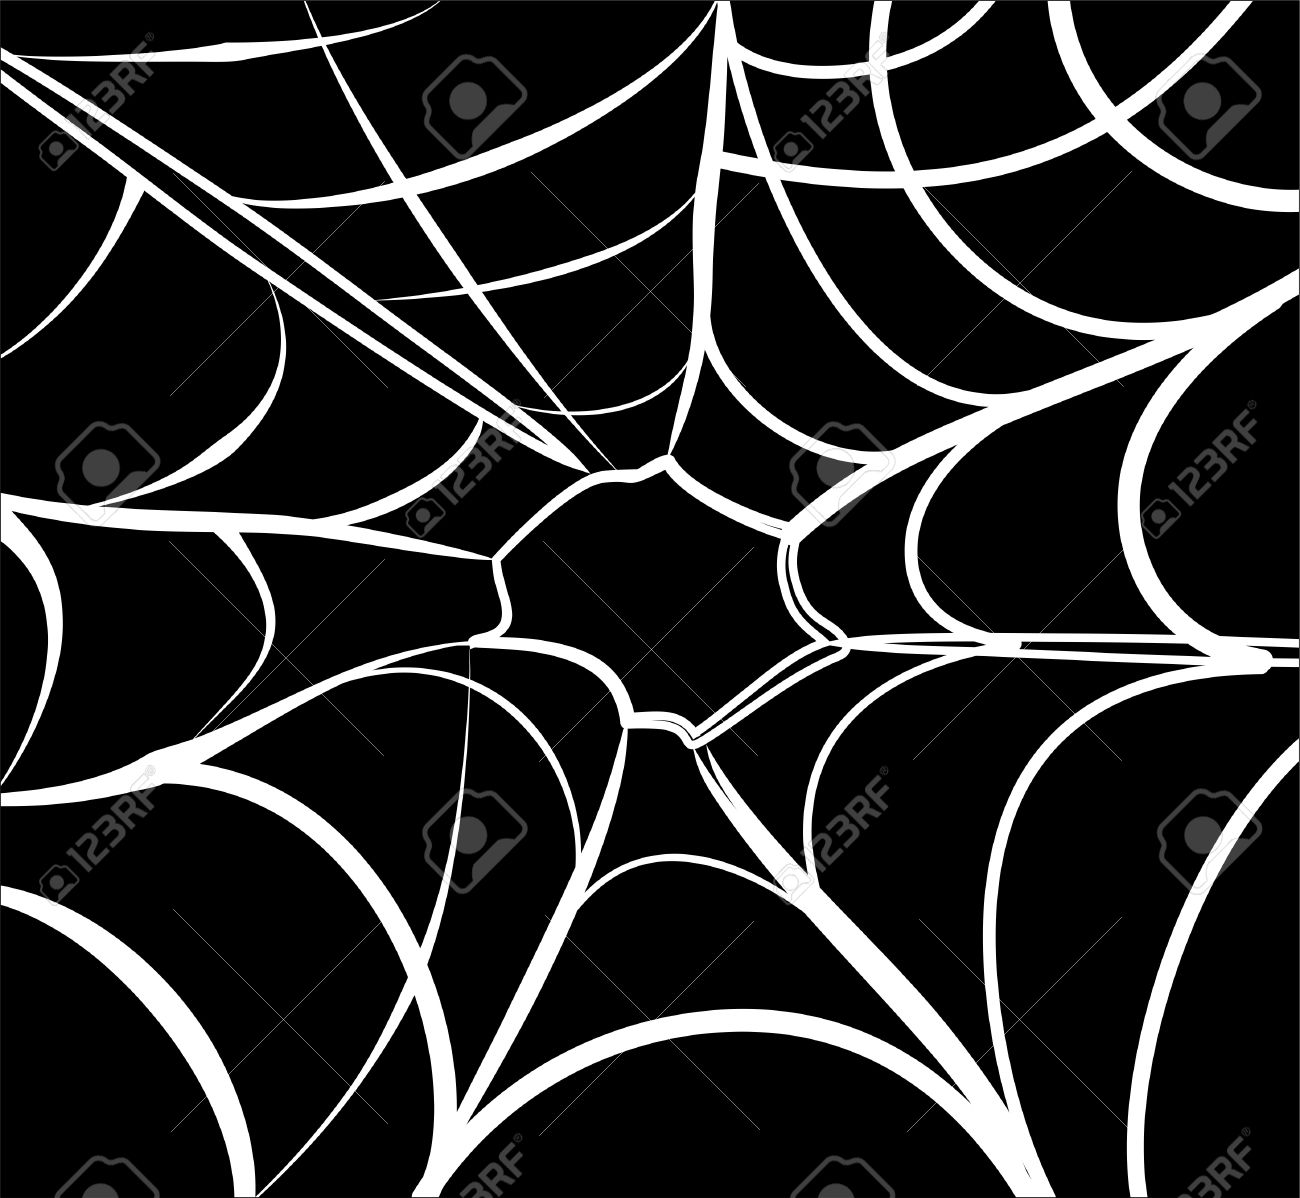 spider web background black and white Stock Vector - 9999081